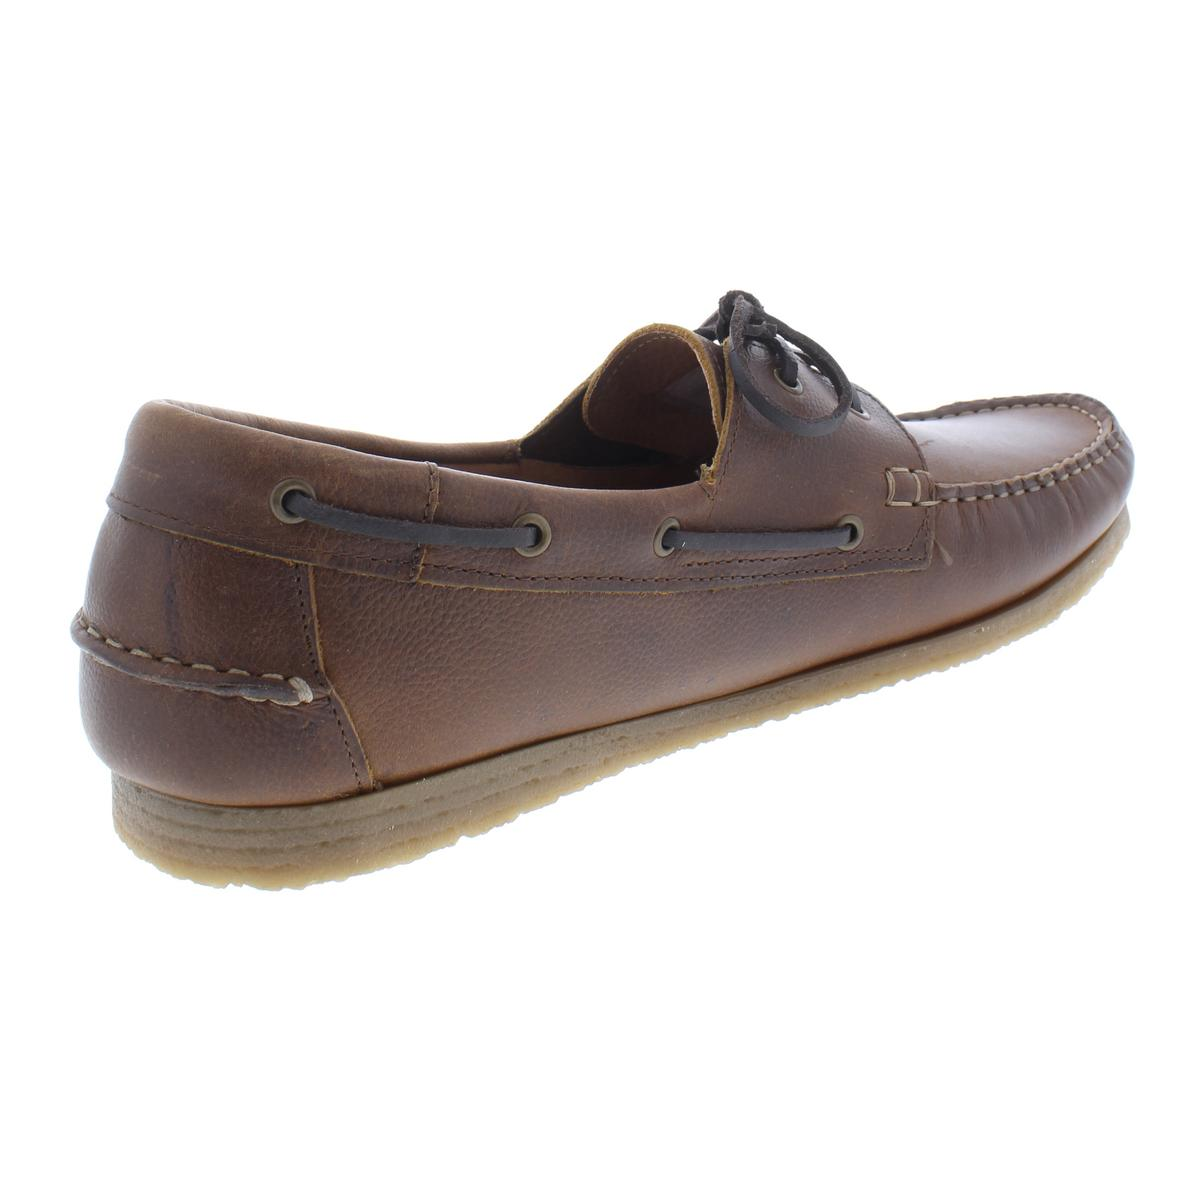 Steve-Madden-Mens-Buoy-Solid-Loafer-Slip-On-Boat-Shoes-BHFO-9944 thumbnail 6